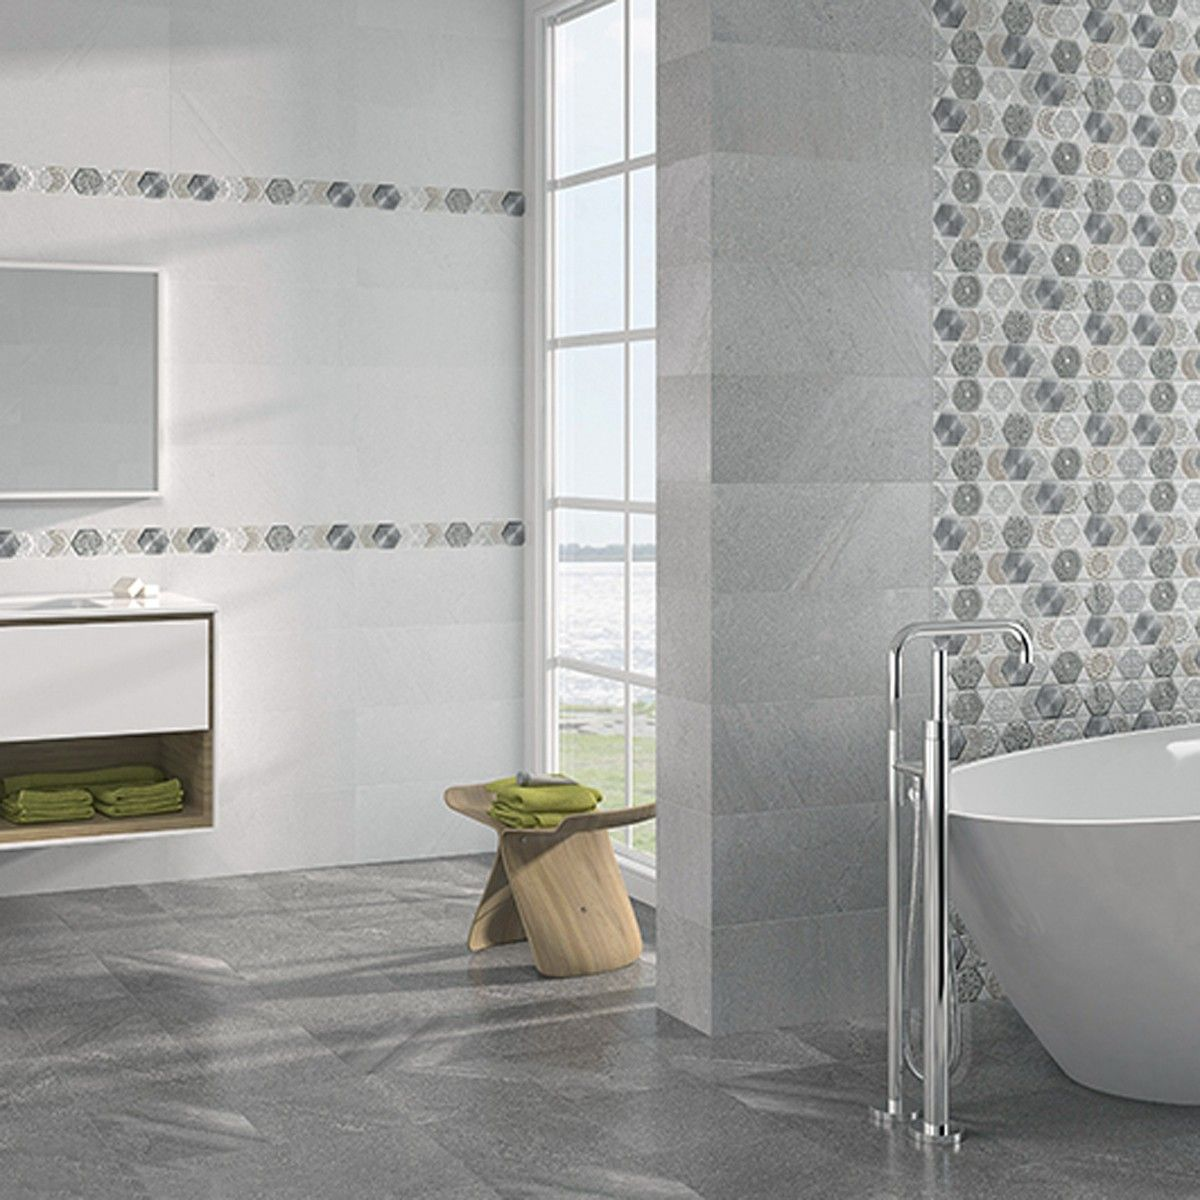 Crown tiles 316x316 globe grafito wall and floor tile crown crown tiles 316x316 globe grafito wall and floor tile crown tiles dailygadgetfo Image collections